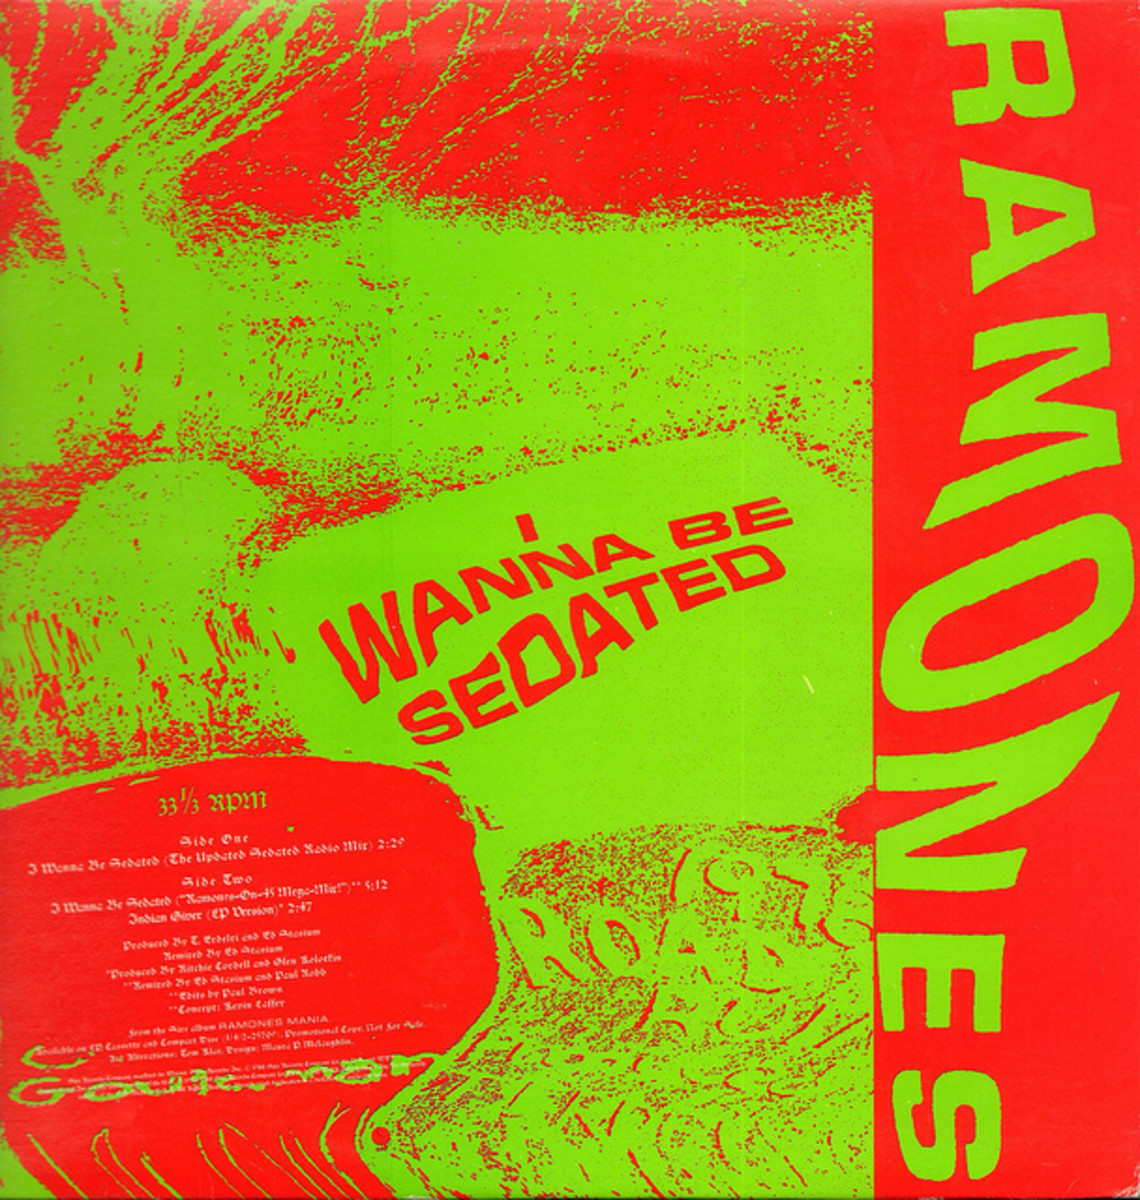 "The Ramones ""I Wanna Be Sedated"" Sire Records PRO-A-3193 12"" Vinyl Record Single 3 Track Version (1988) Promotional Issue Only"